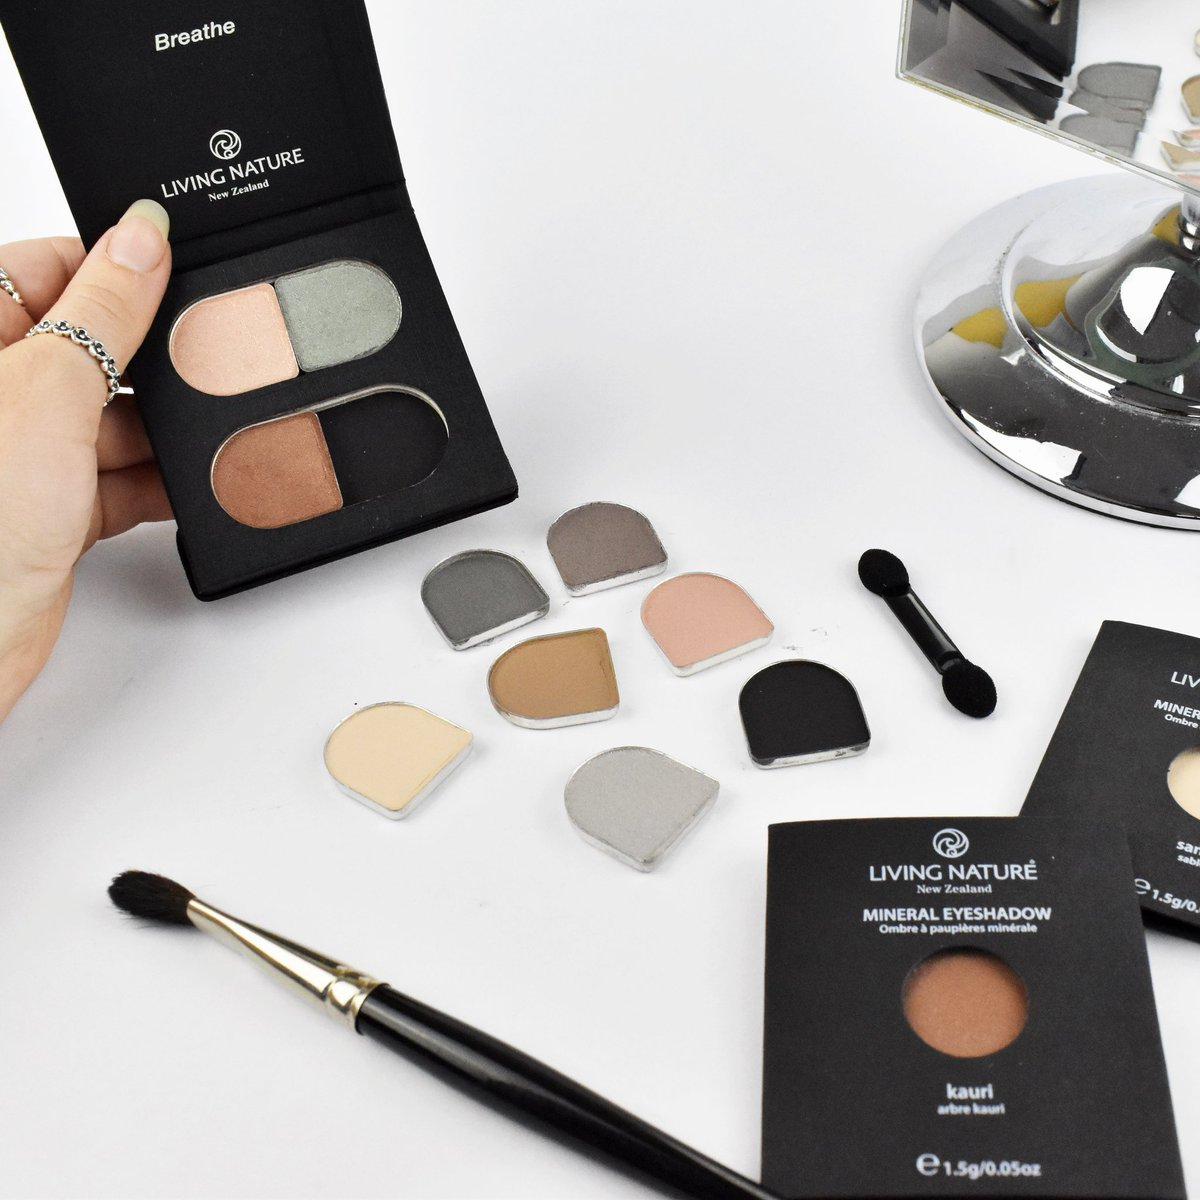 Customise Your Own Eyeshadow Palette